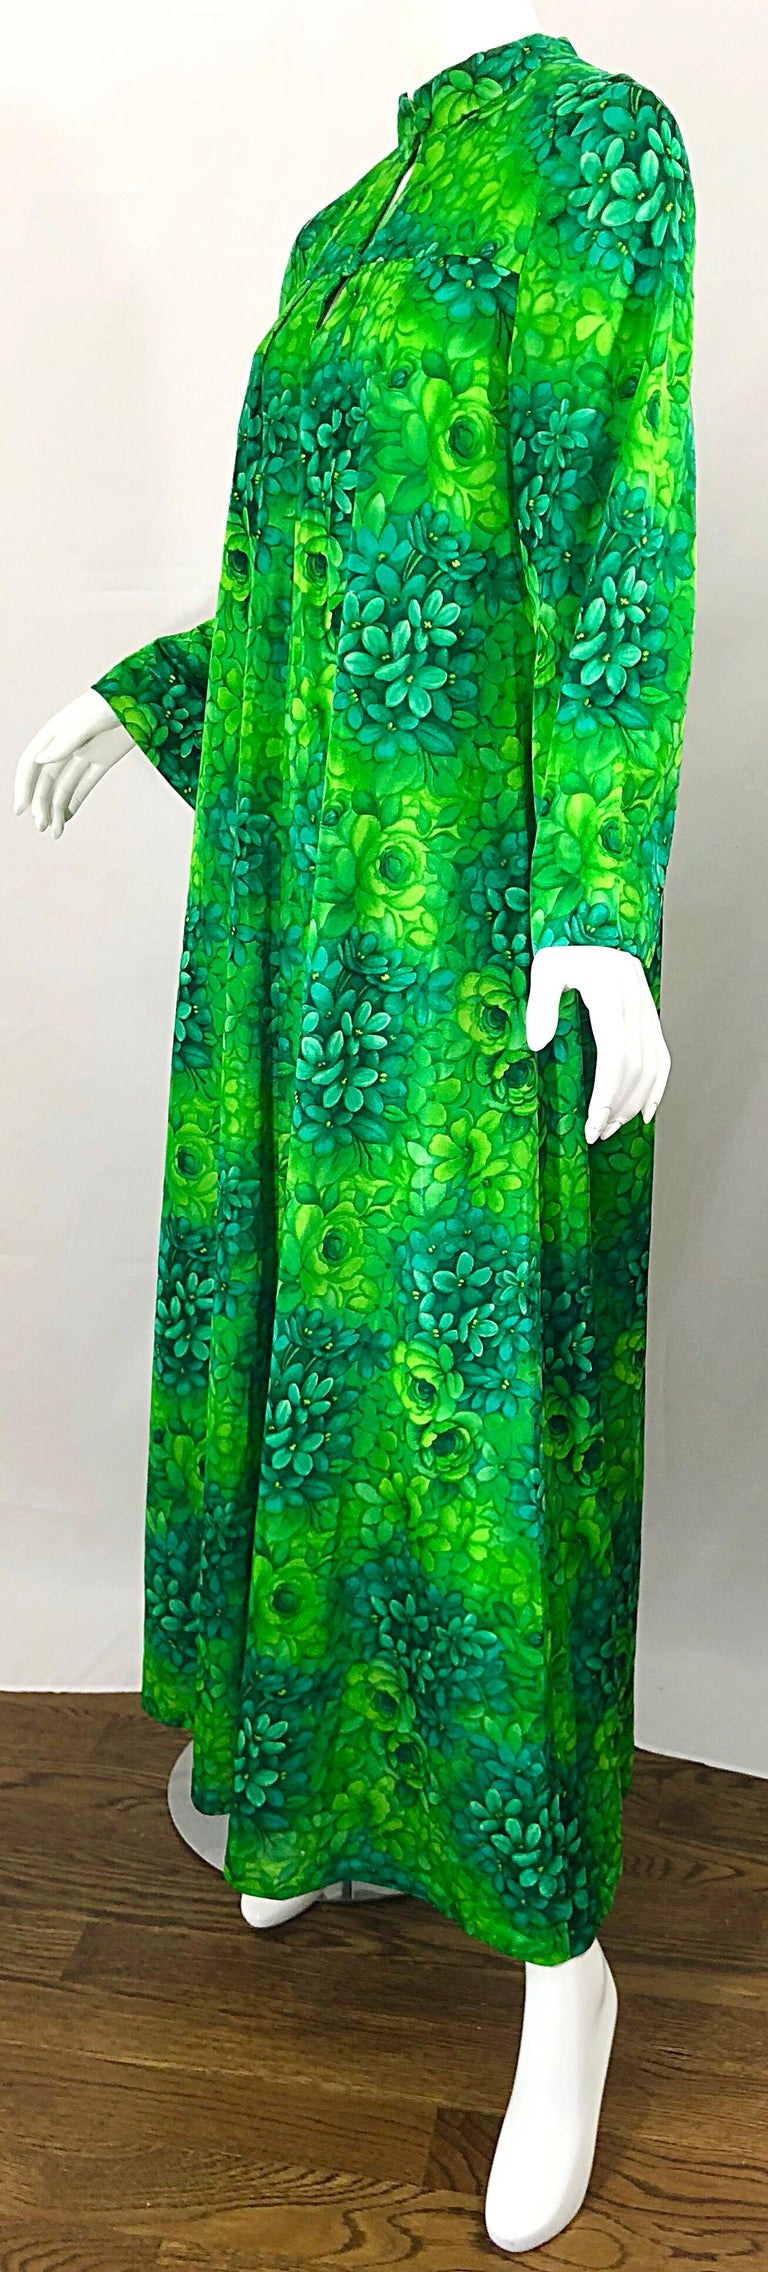 Amazing 1970s Neon + Kelly Green Abstract Flower Print 70s Vintage Caftan Dress For Sale 8